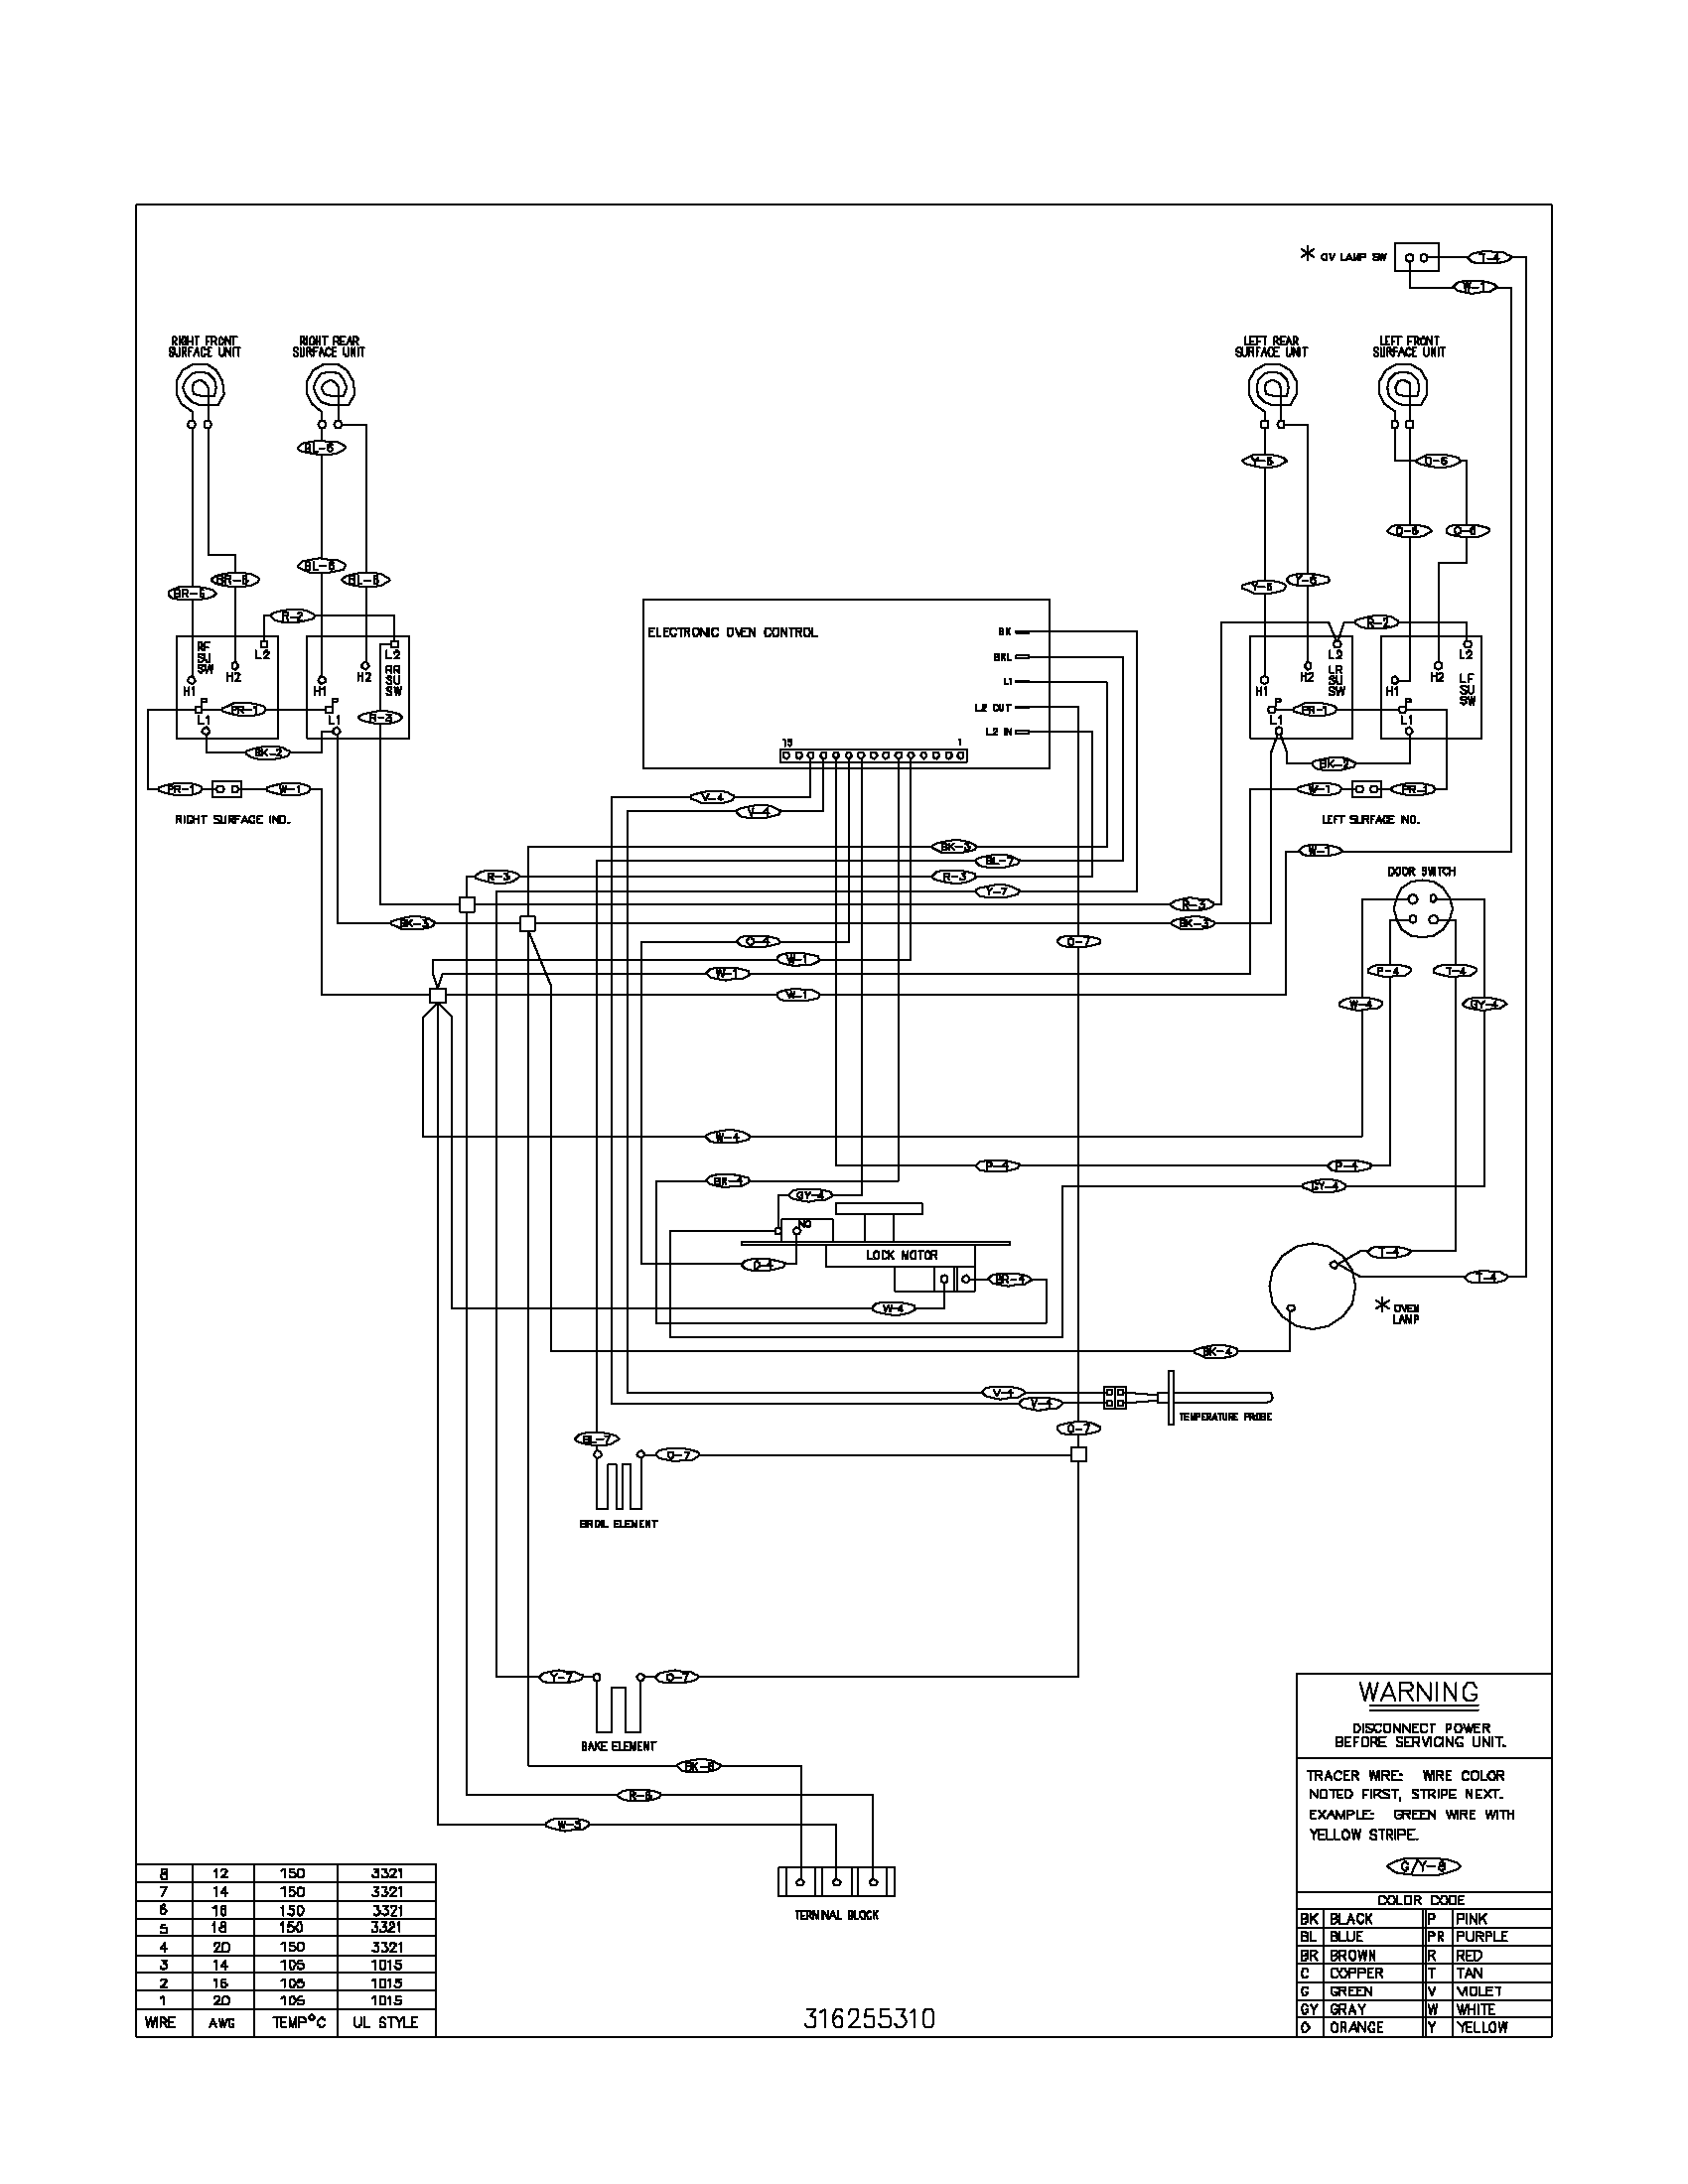 wiring diagram parts frigidaire gallery refrigerator wiring diagram frigidaire wiring  at eliteediting.co